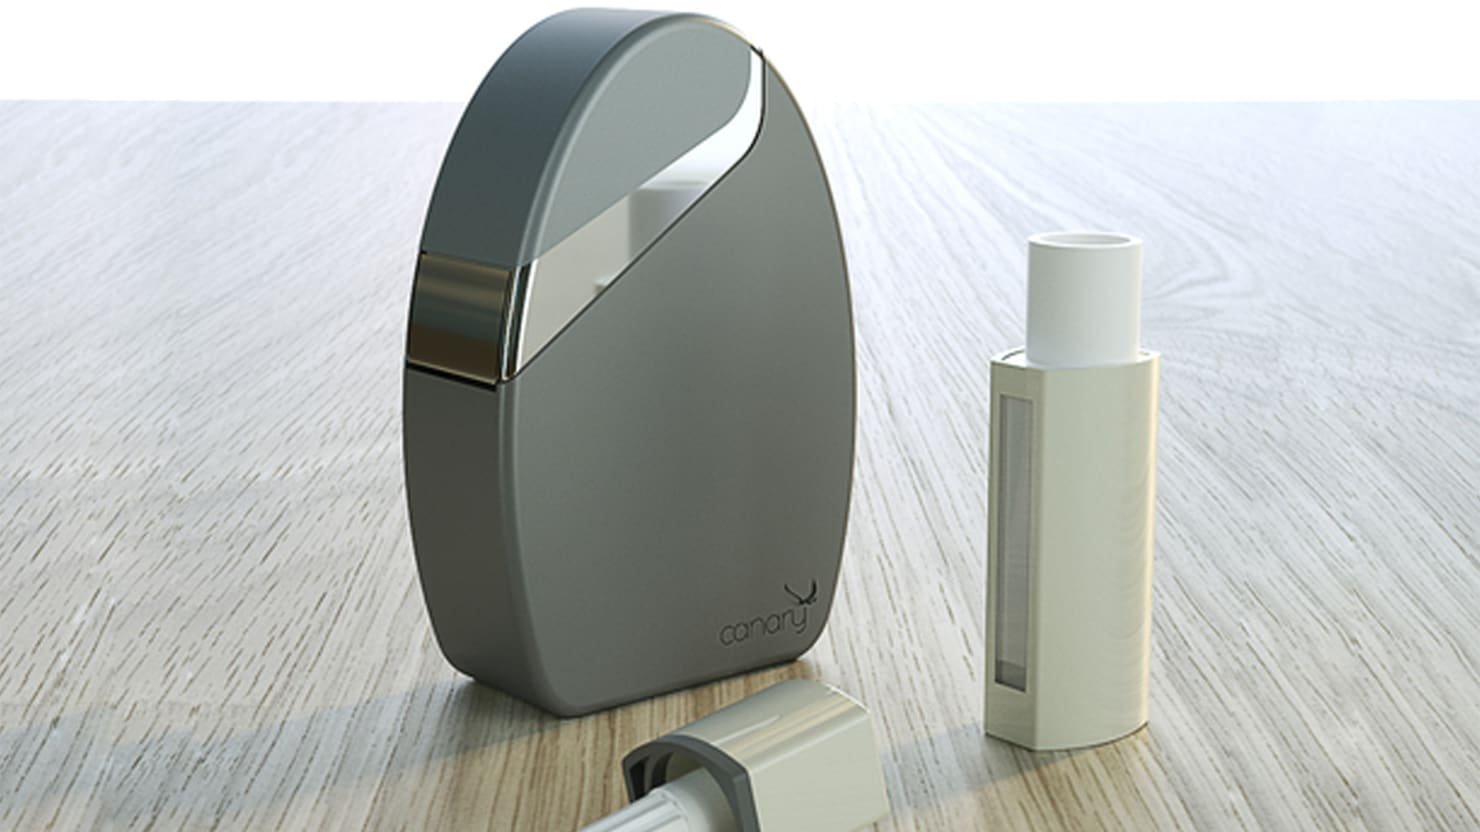 The Gluten Detecting Device You'll Want to Own